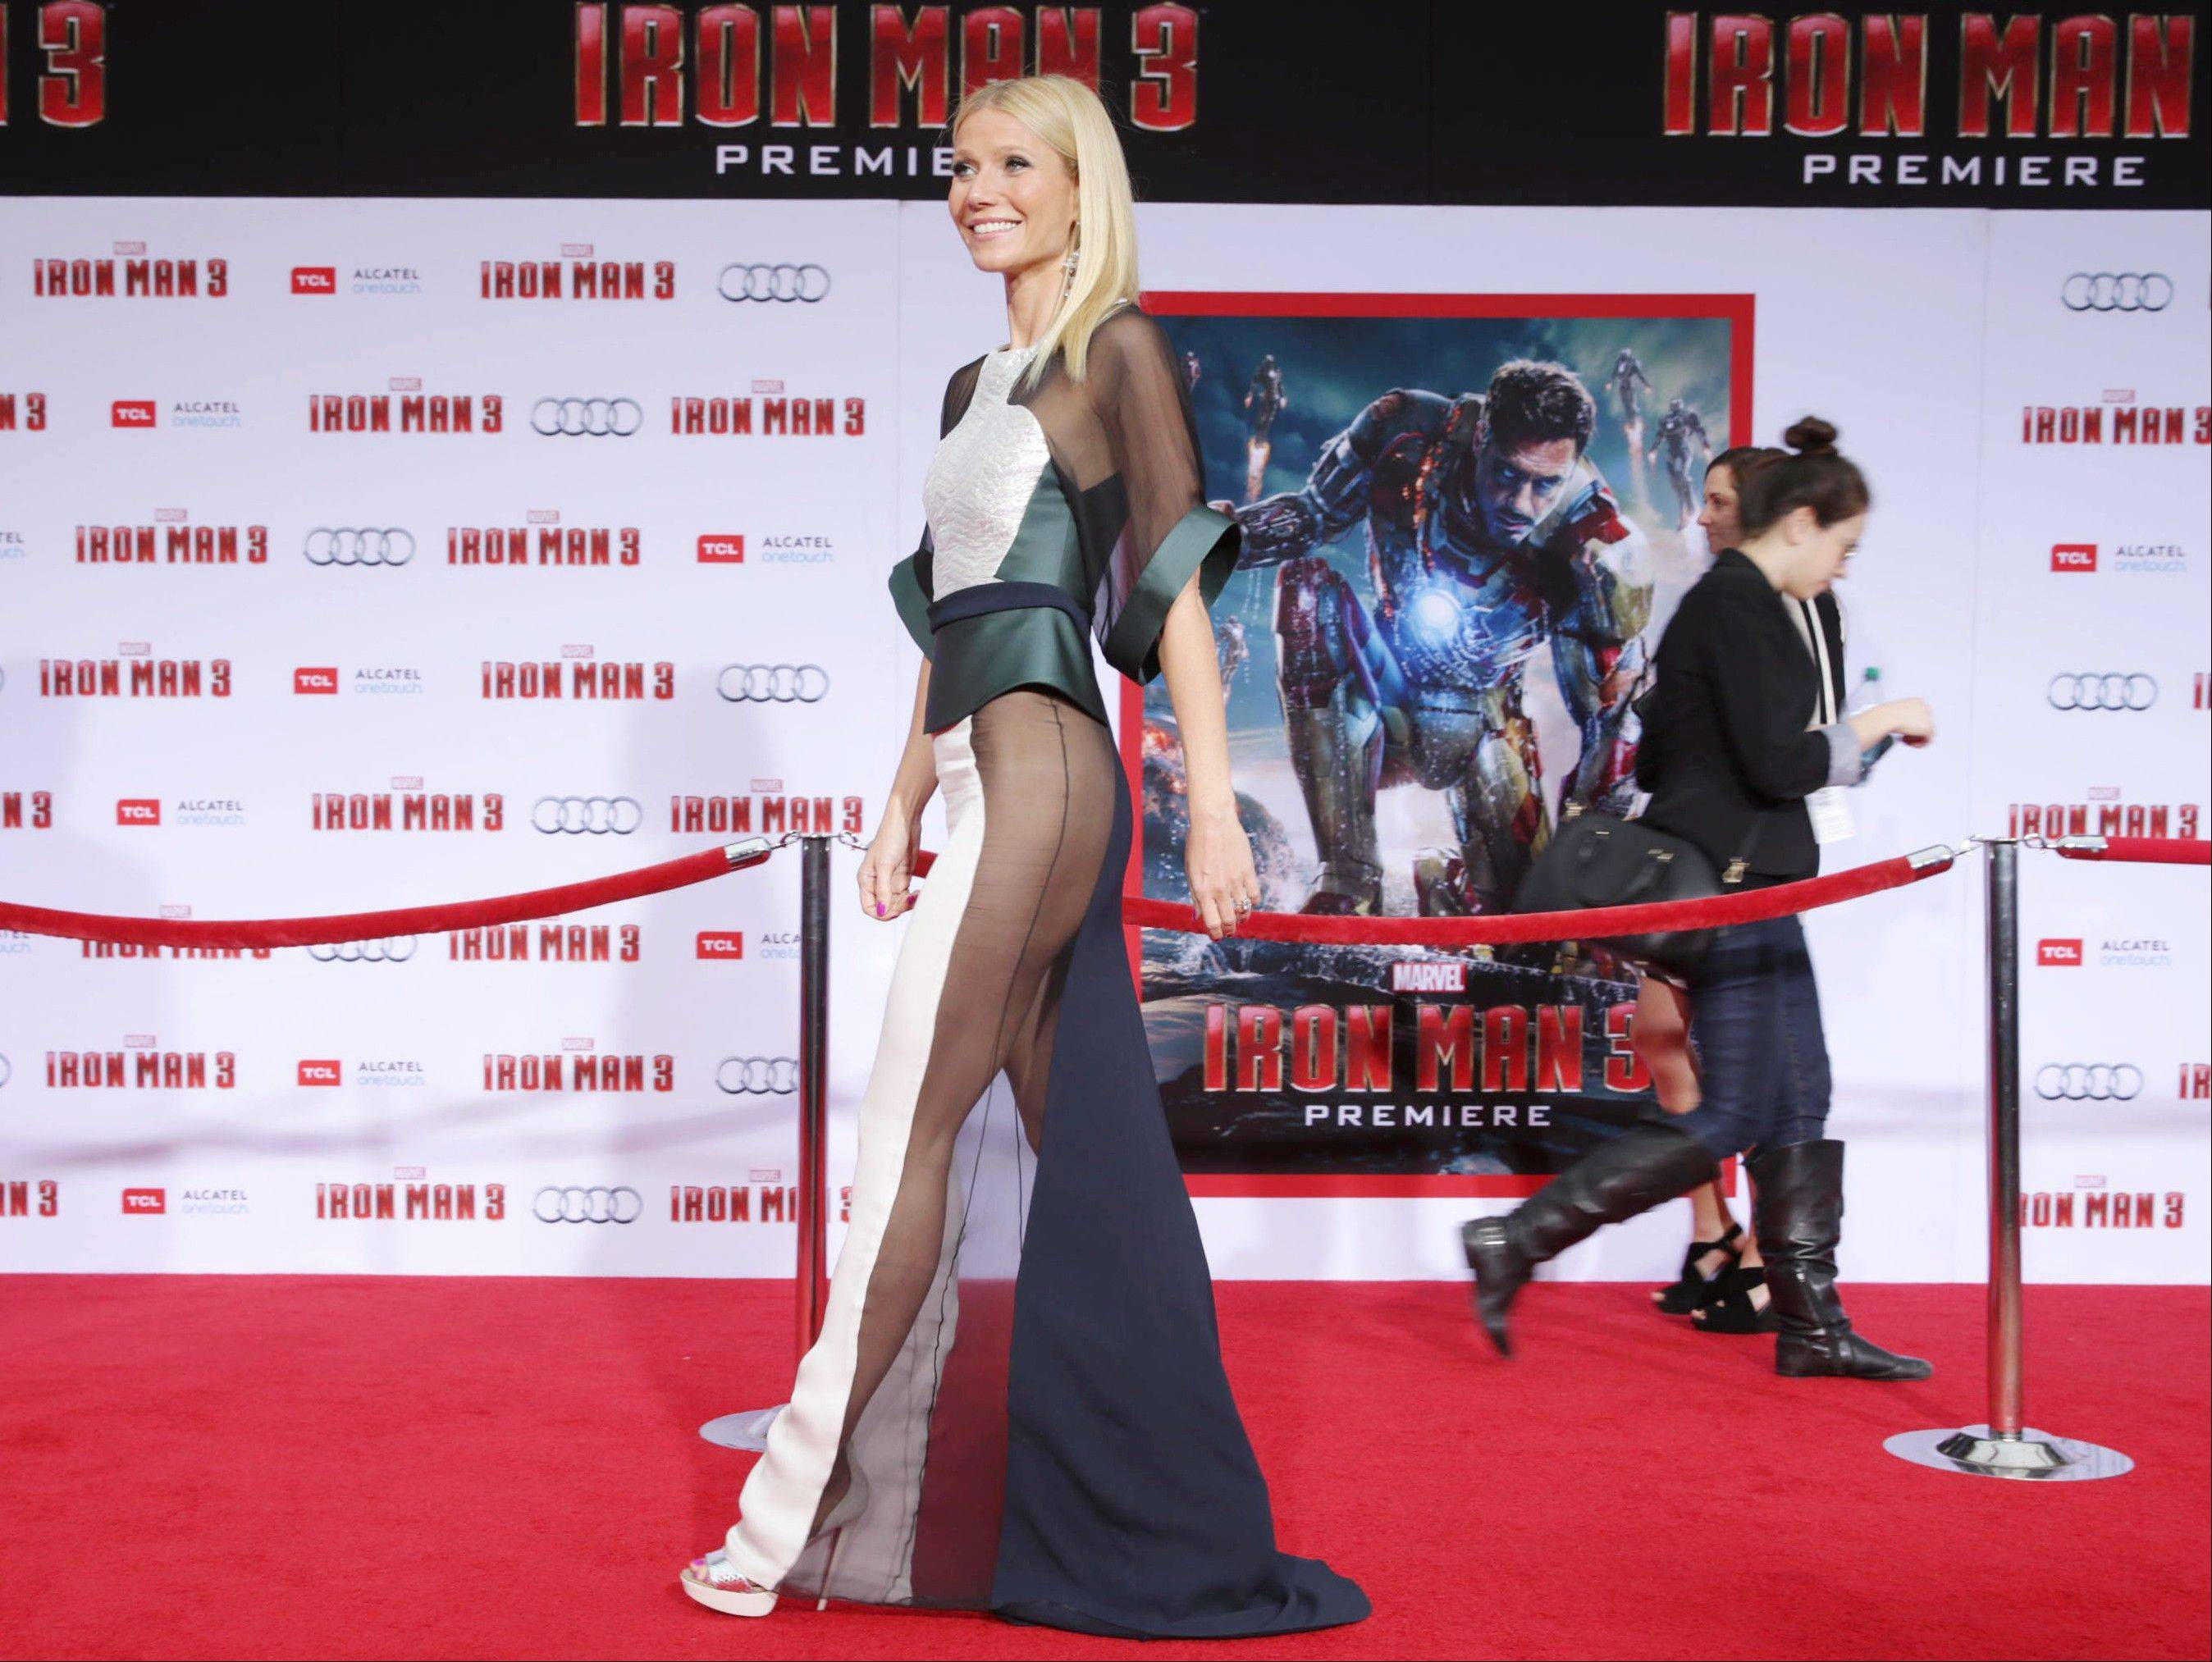 "This April 24, 2013 file photo shows actress Gwyneth Paltrow wearing a sheer dress at the world premiere of ""Iron Man 3"" in Los Angeles. The 40-year-old actress stars as Pepper Potts, Tony Stark's love interest and assistant-turned-business partner in the ""Iron Man"" trilogy."